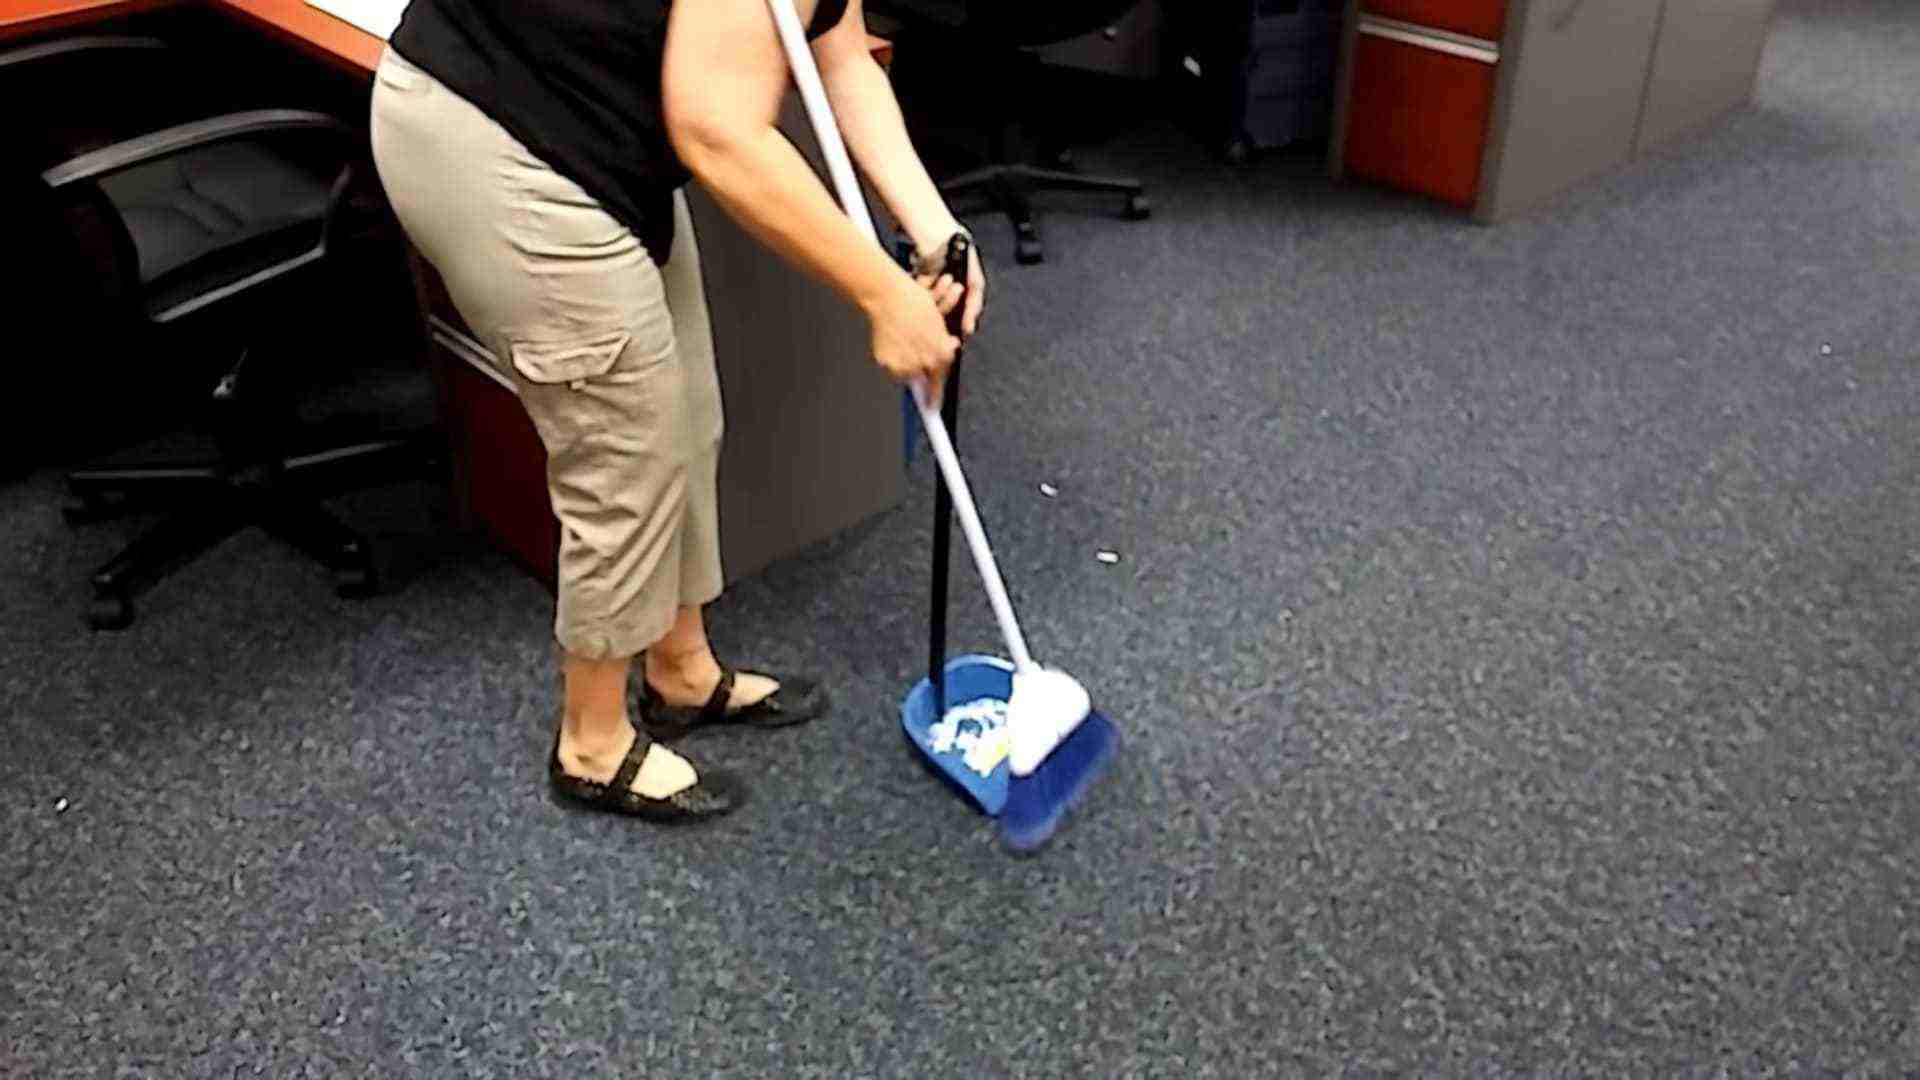 Dampen and gently sweep the carpet before using a vacuum on it